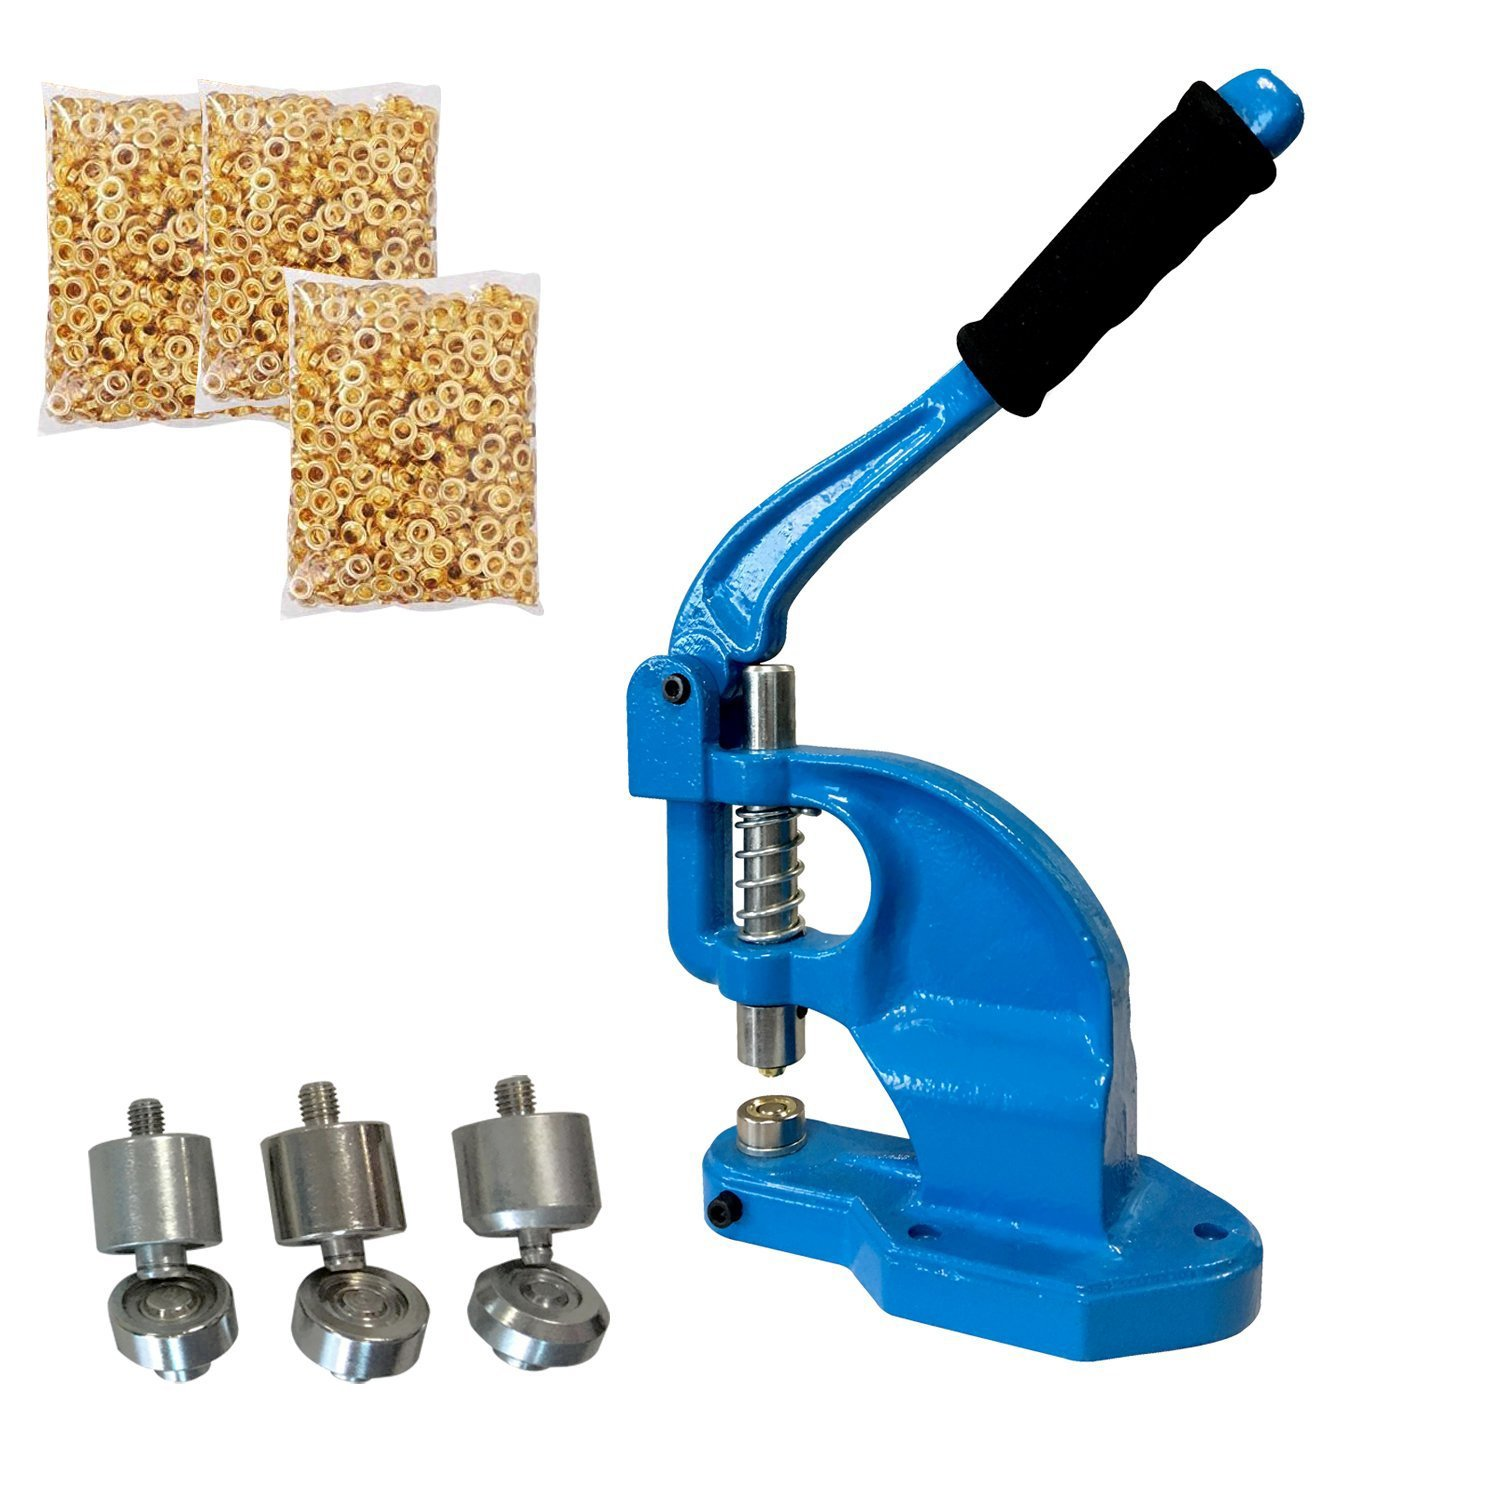 Tenive Manual Heavy Duty Hand Press Grommet Machine¨C Hand Eyelets Hole Punch Tool with 3 Die Sets - #0 #2 #4 - 900 Grommets - A Perfect Hand Press Grommet Machine for Semi-professional and Home